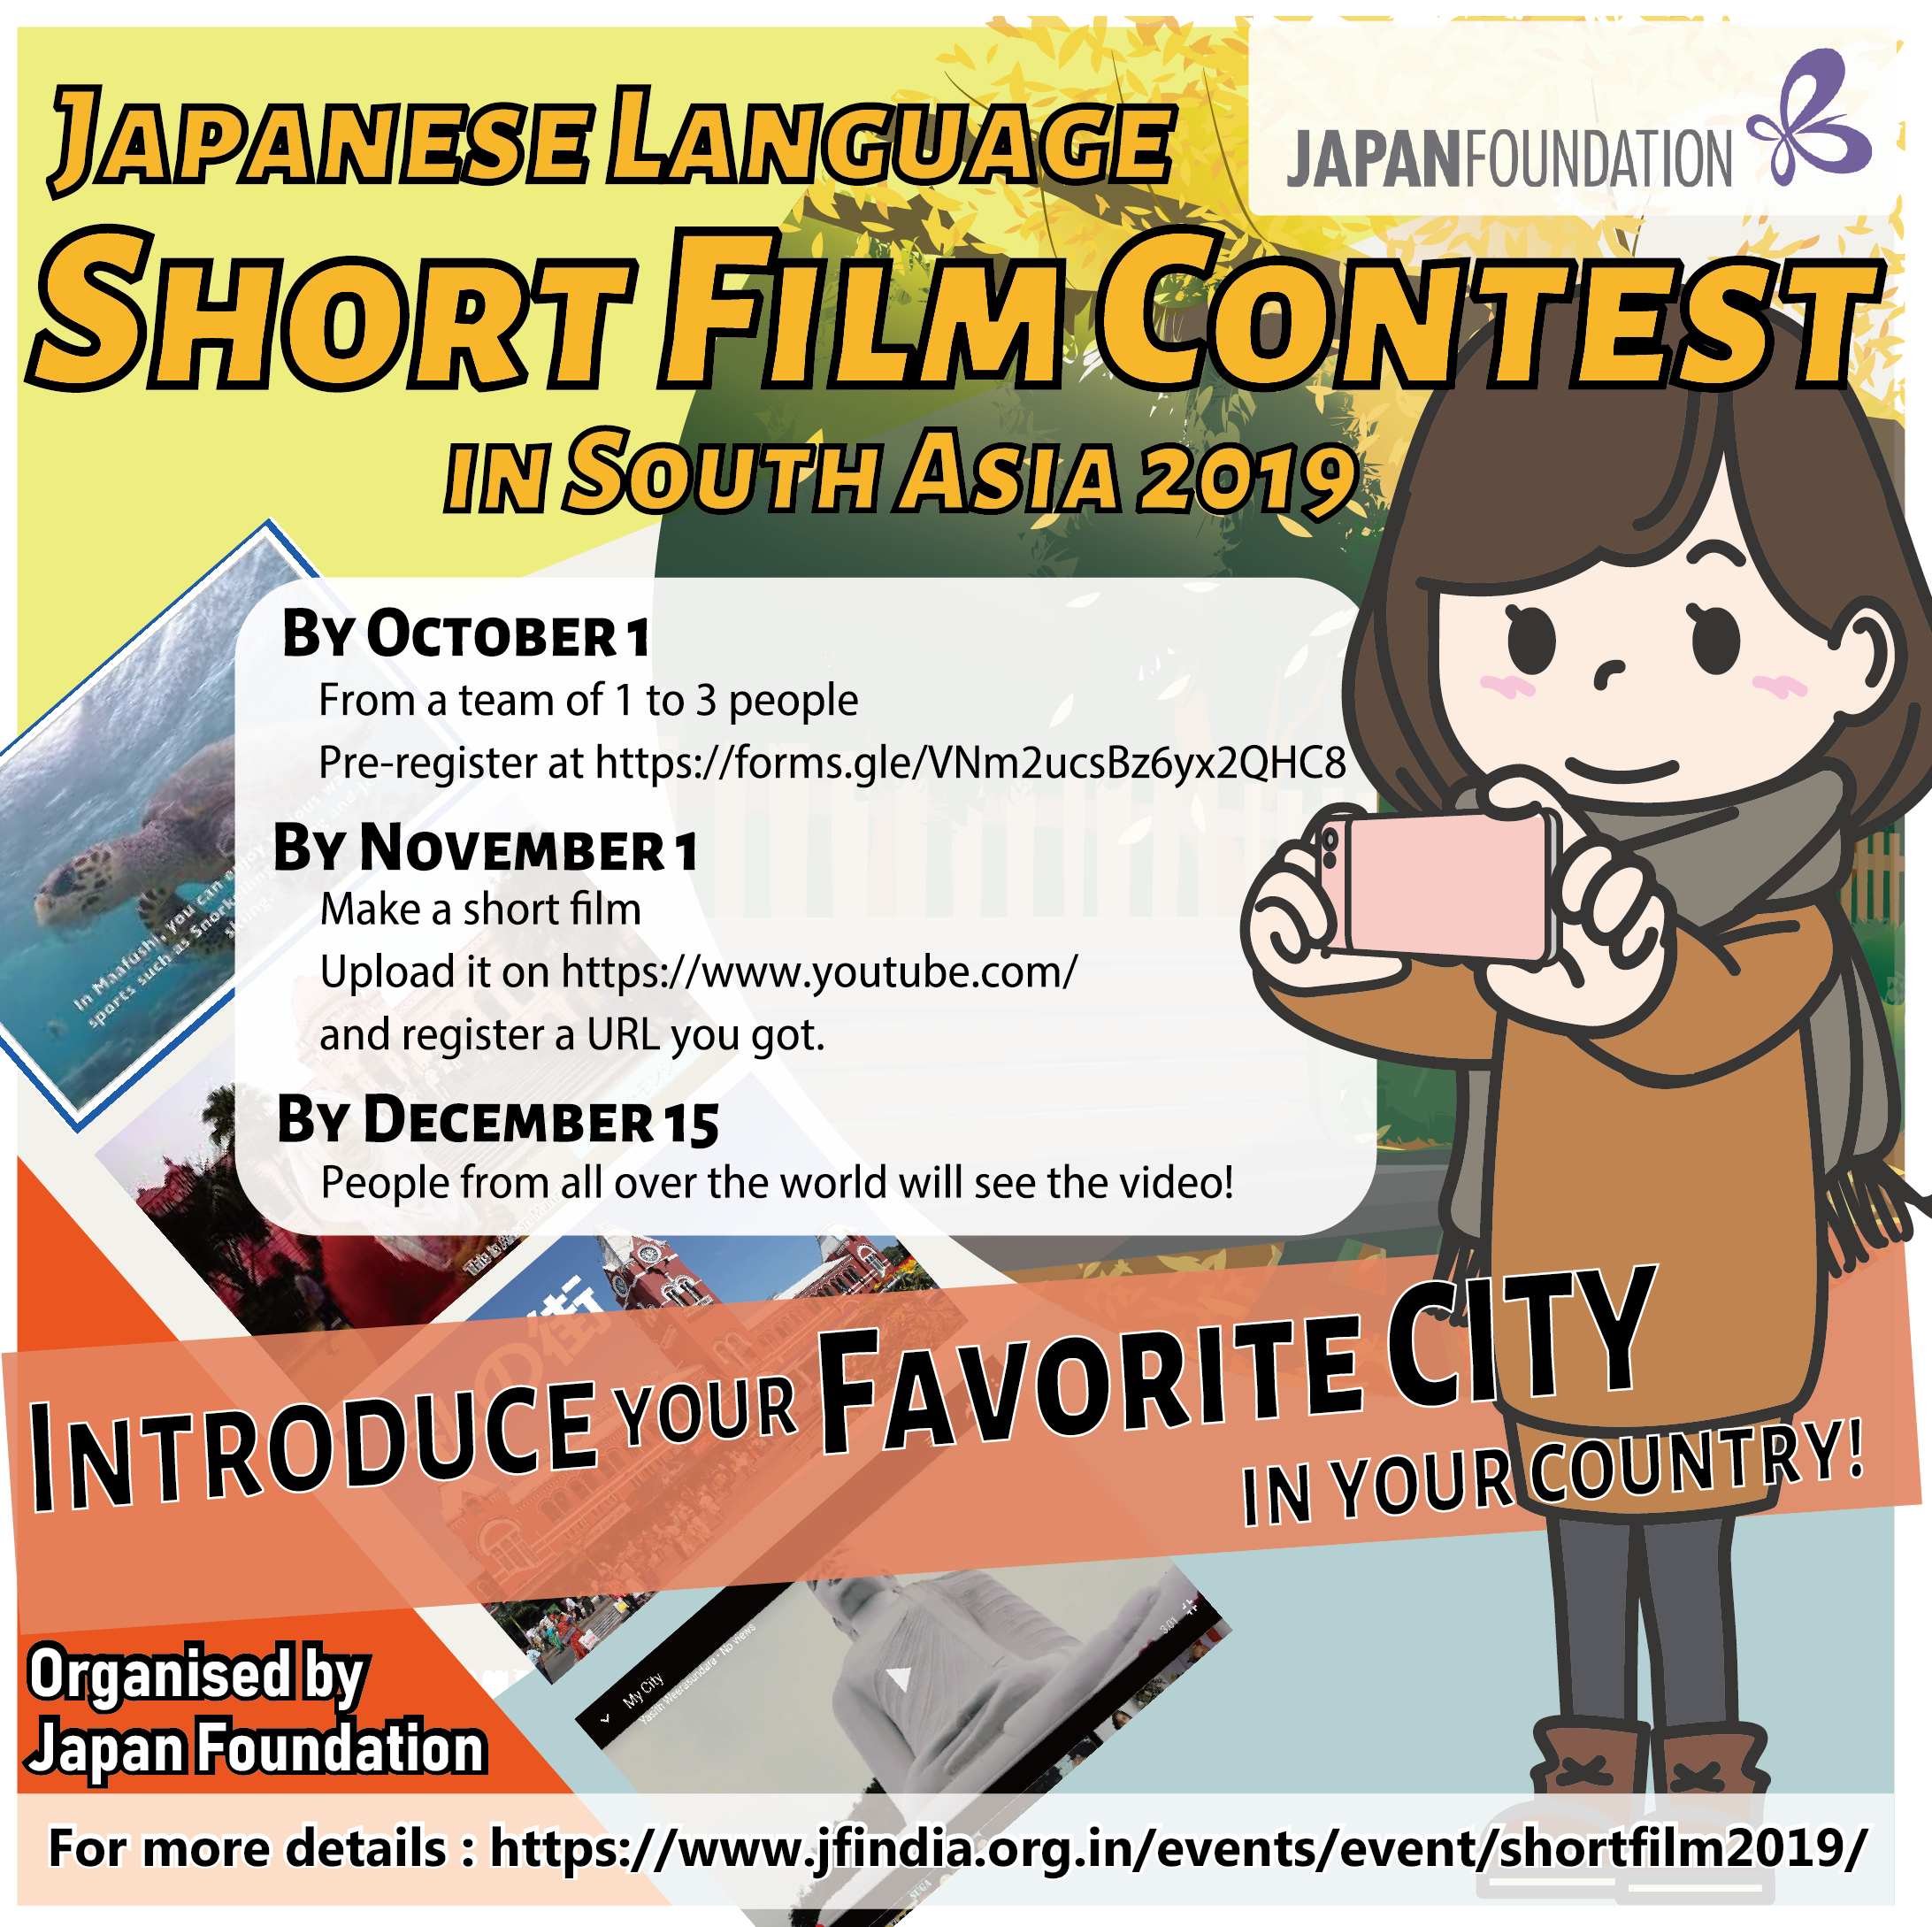 Japanese Language Short Film Contest in South Asia 2019